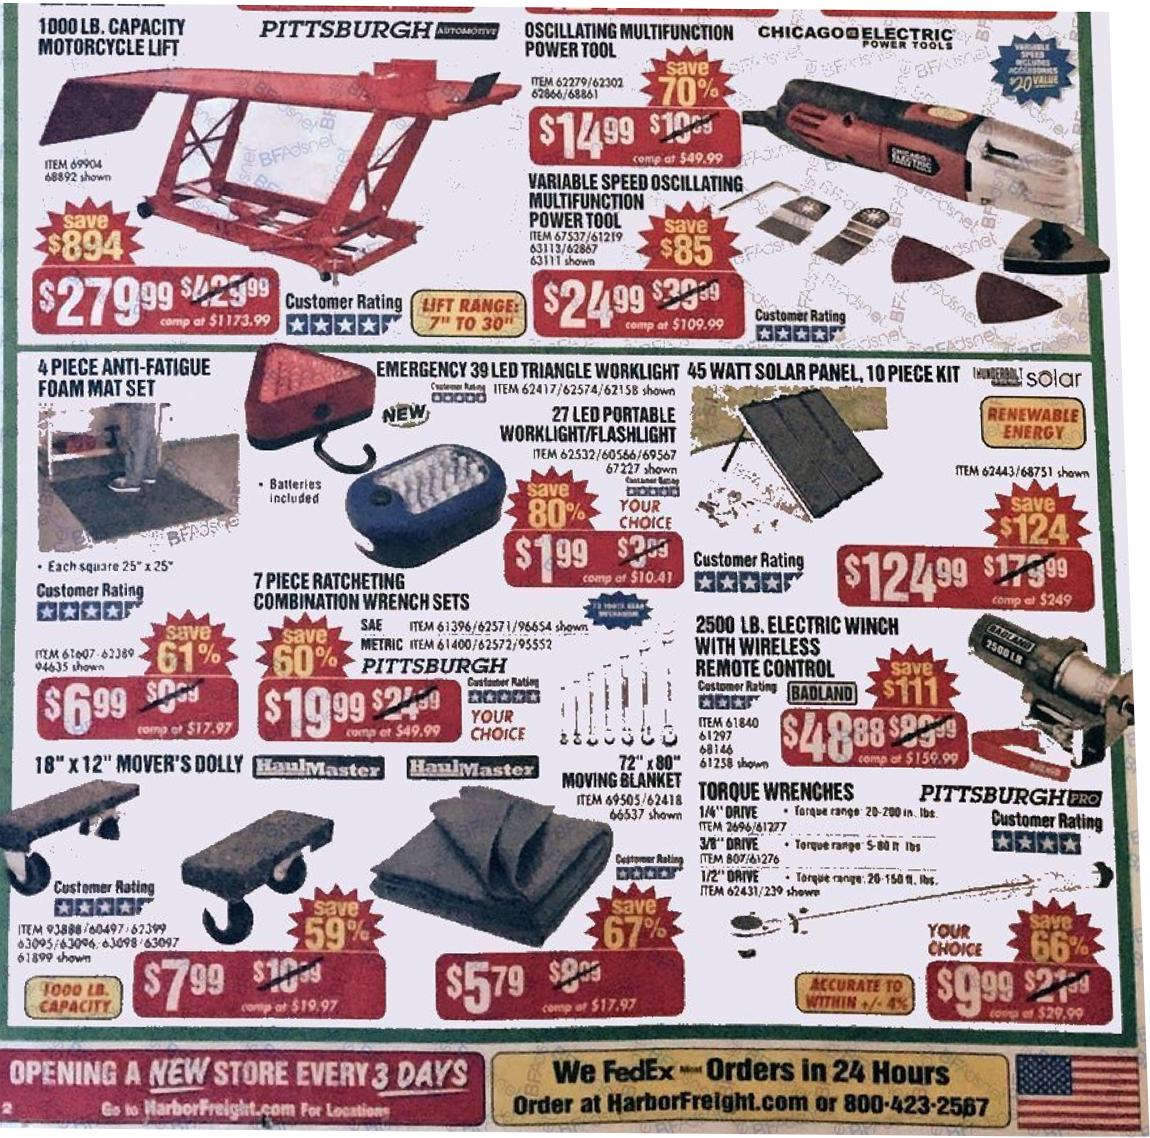 At Harbor Freight Tools you'll find one of the largest selections of brand-name tools, plus many items you just can't find elsewhere. Make Harbor Freight Tools your first stop for the best prices on: Chicago Electric, Pittsburgh, Central Machinery, Central Hydraulic, and Central Forge.